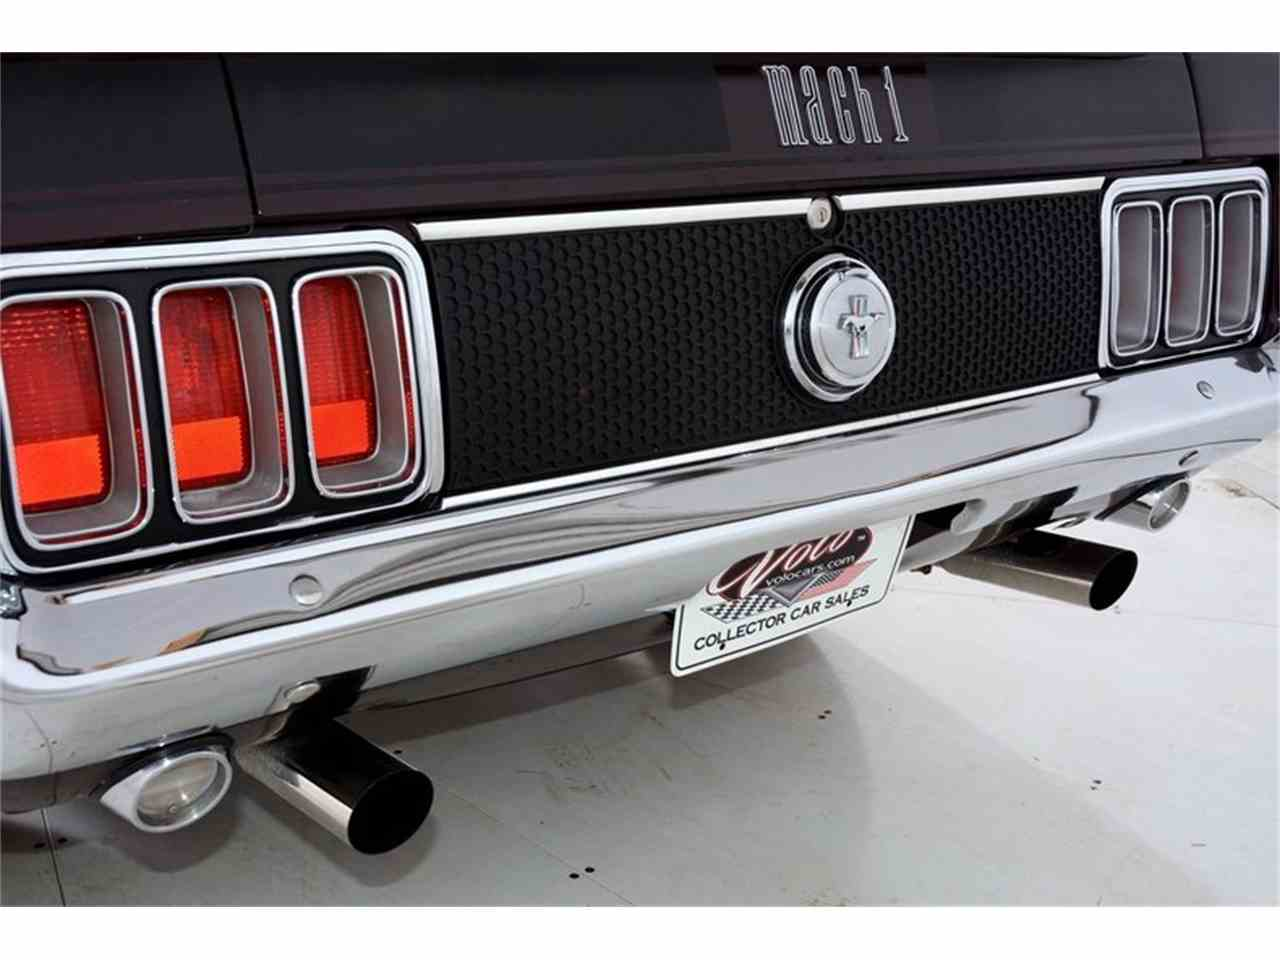 Large Picture of 1970 Mustang Mach 1 Pro Touring located in Illinois - $41,998.00 - L8H9